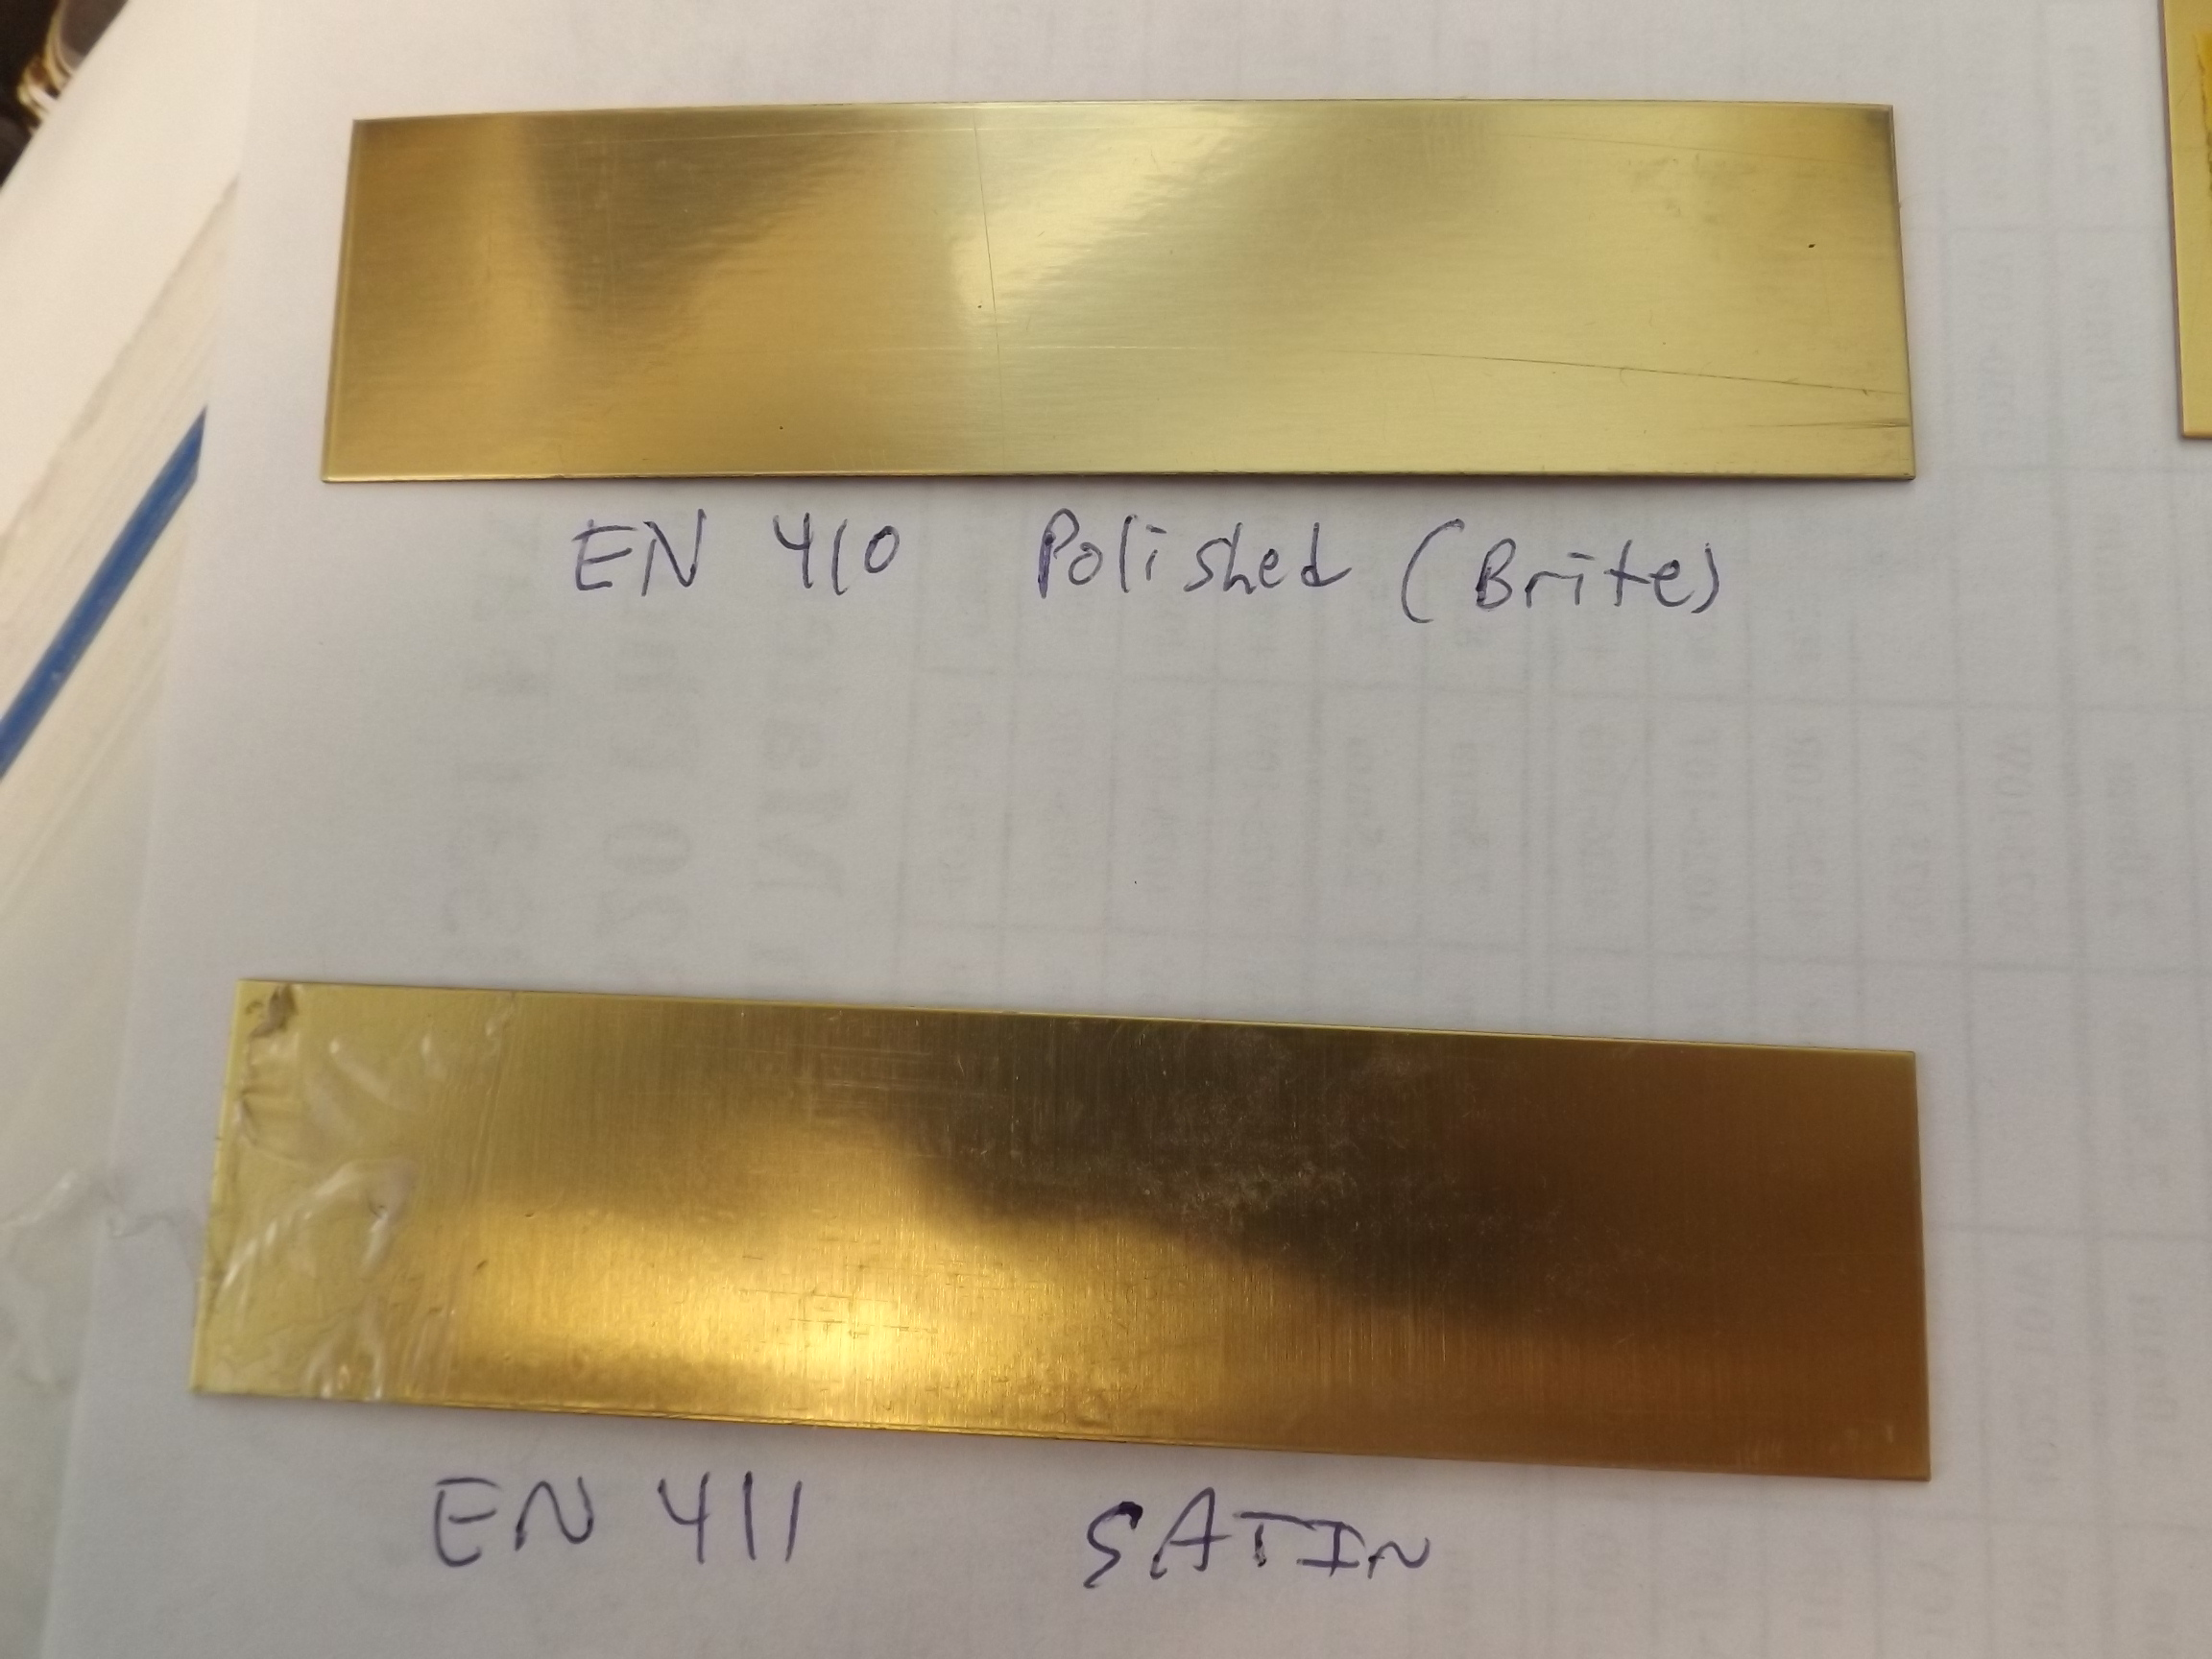 "EN410 Engraving/Trophy Plates-Brass 4"" x 1"" Polished (brite) Finish"